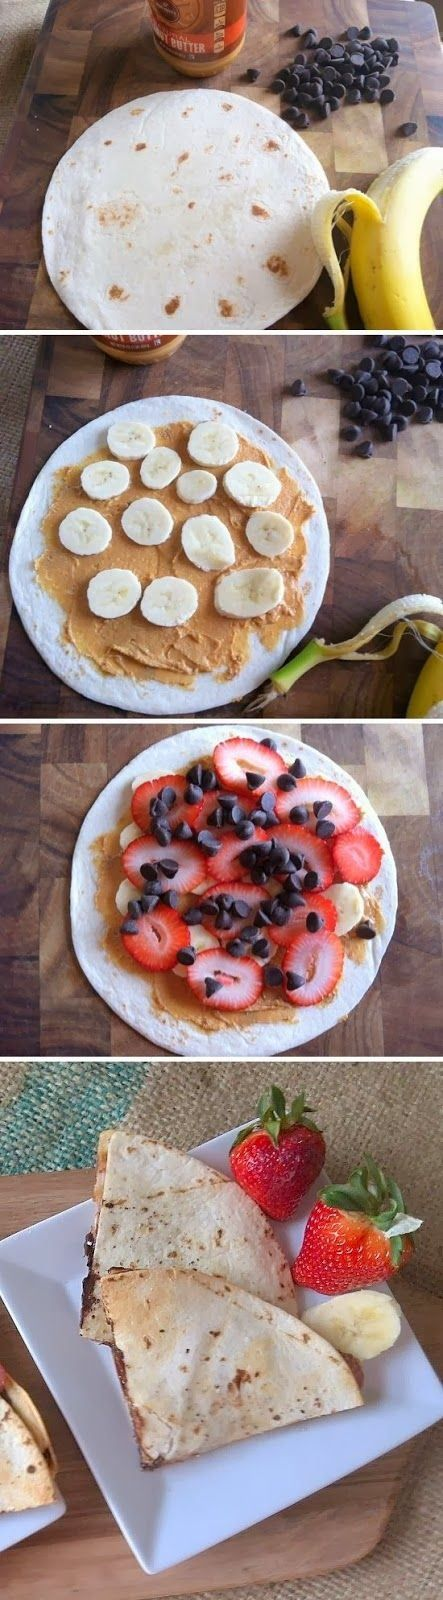 Fruit Quesadilla. With peaunutbutter. Not cream cheese. - Live in Luxury; Eat in Luxury - Luxury Central